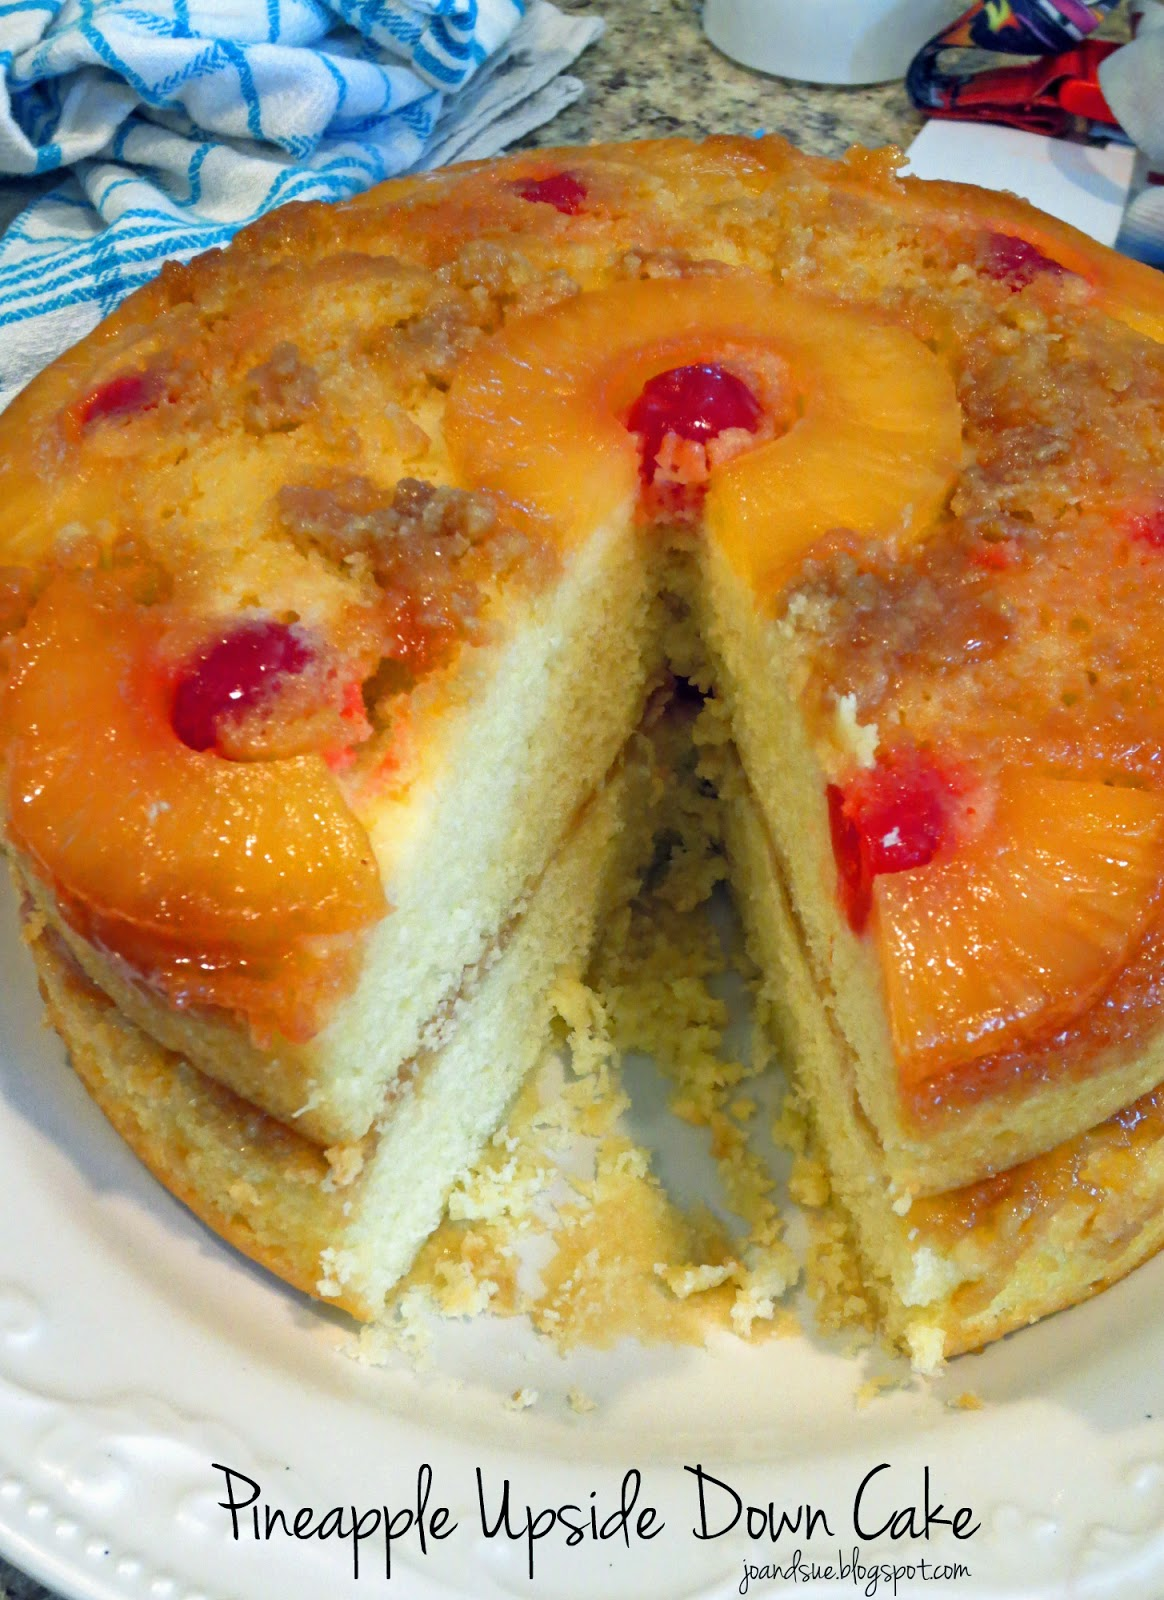 Jo and Sue: Layered Pineapple Upside Down Cake